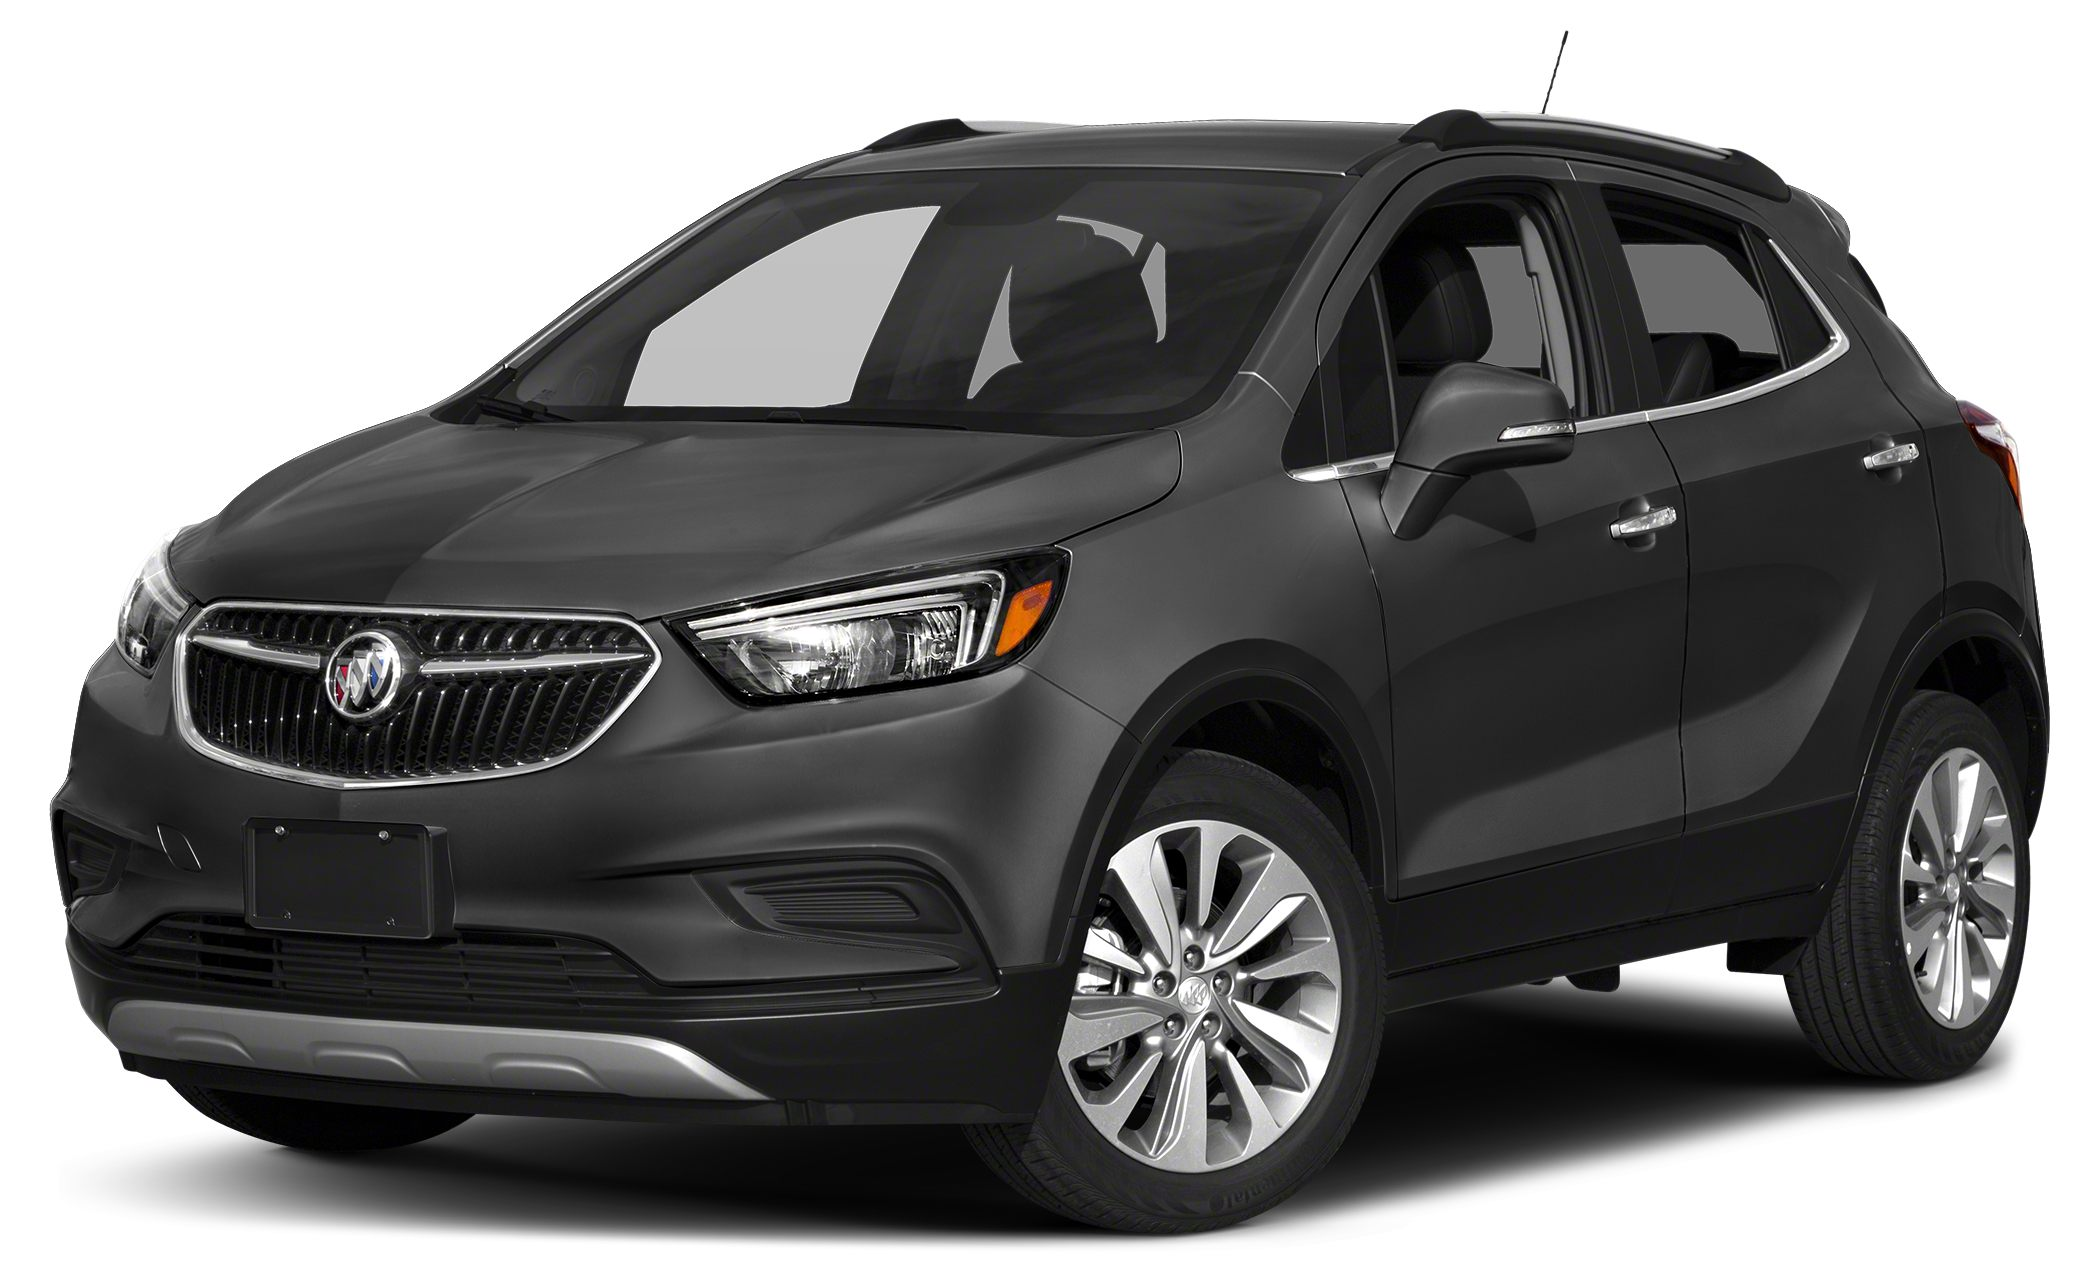 2018 Buick Encore Sport Touring Get ready to go for a ride in this 2018 Buick Encore Sport Touring